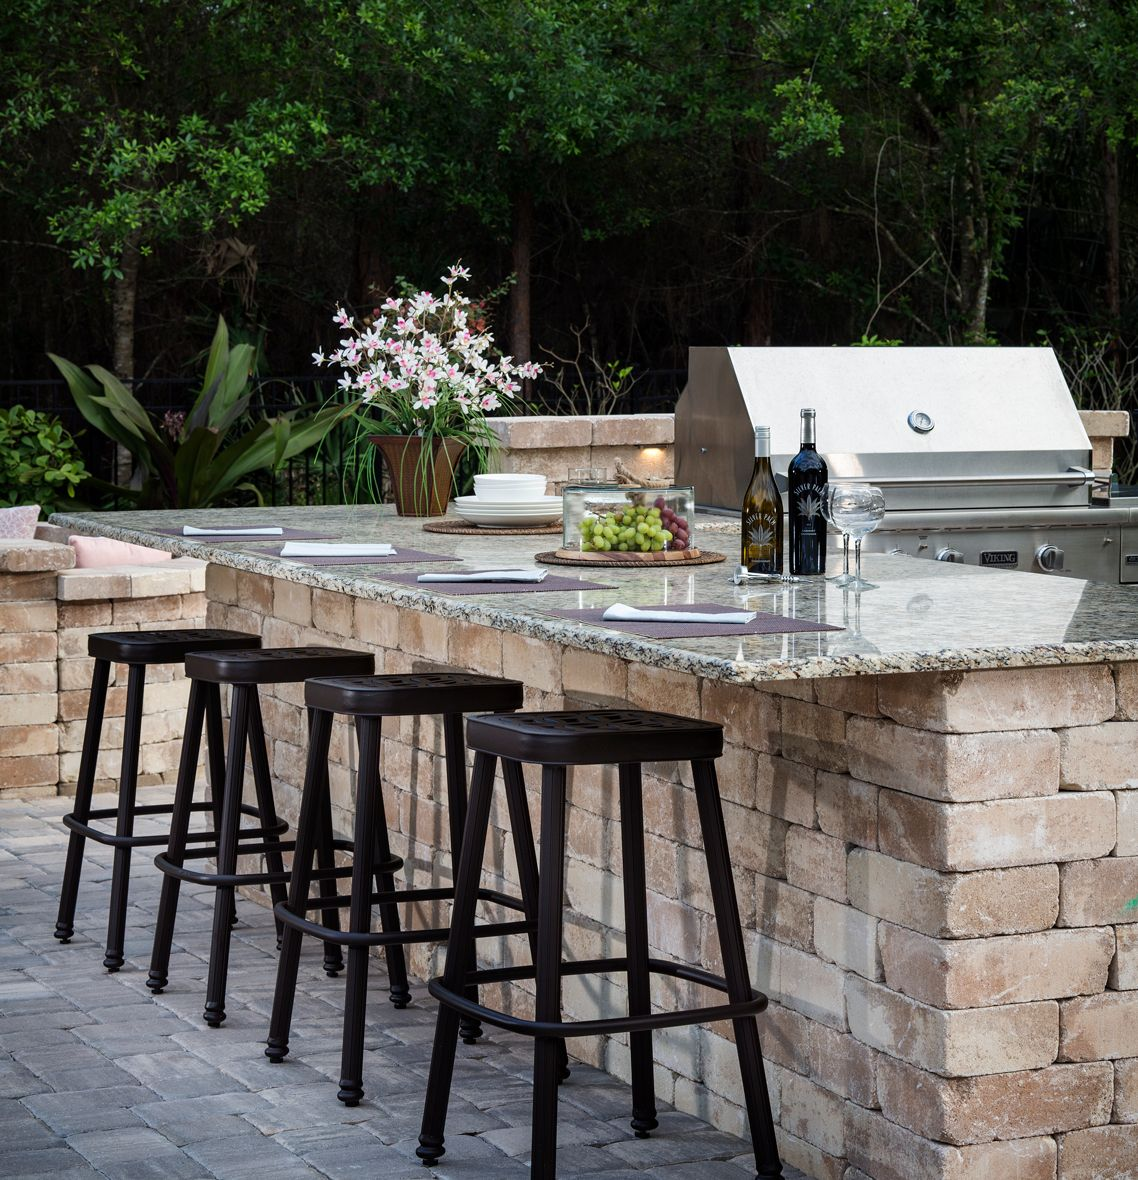 Consider Adding Bar Style Seating To Your Outdoor Kitchen So You Can Easily Interact With Guests As Cook